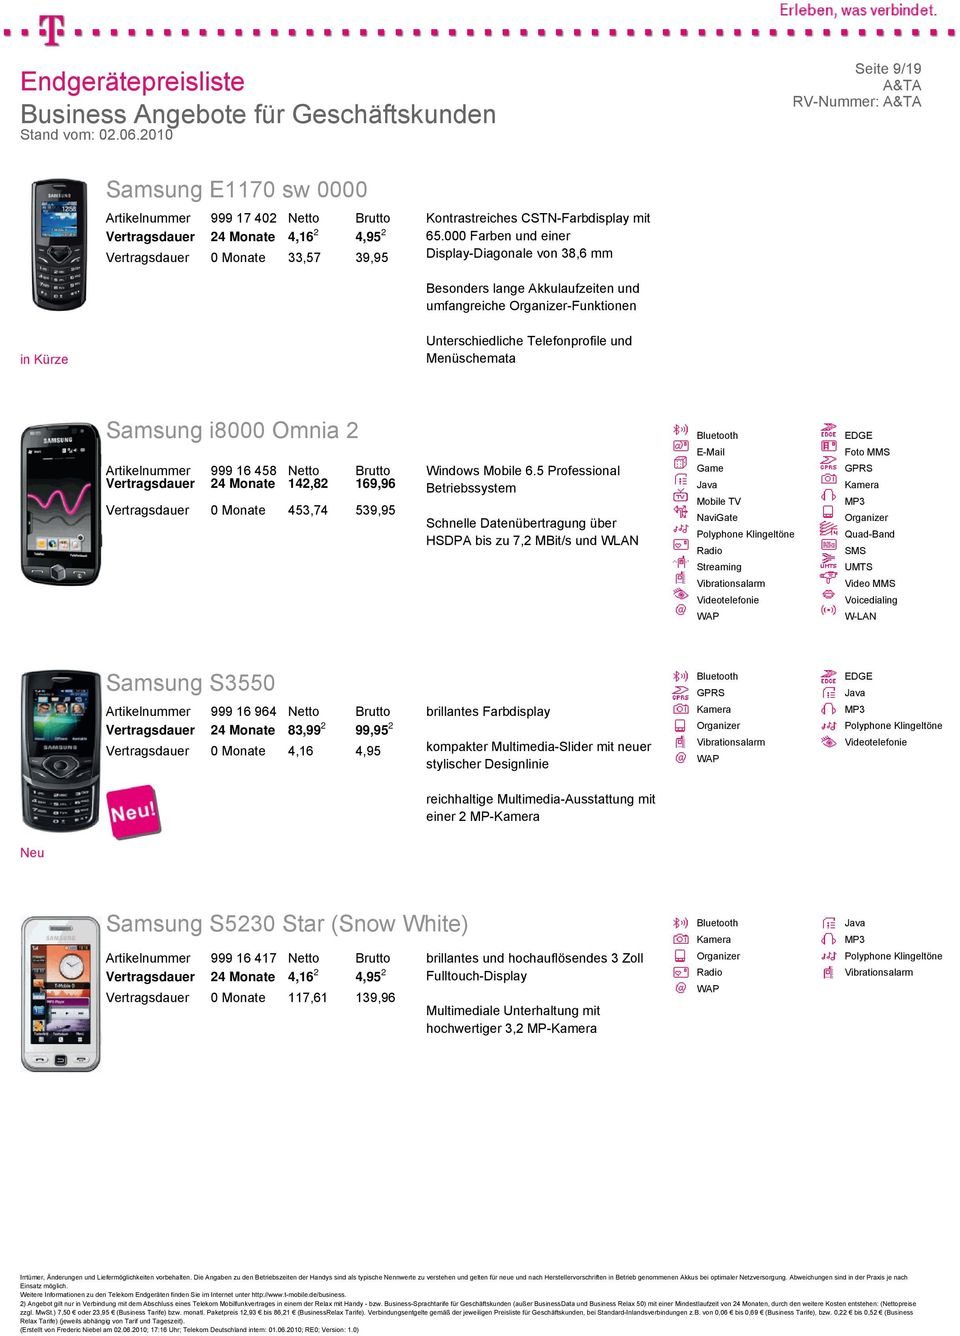 Artikelnummer 999 16 458 Netto Brutto 24 Monate 142,82 169,96 453,74 539,95 Windows Mobile 6.